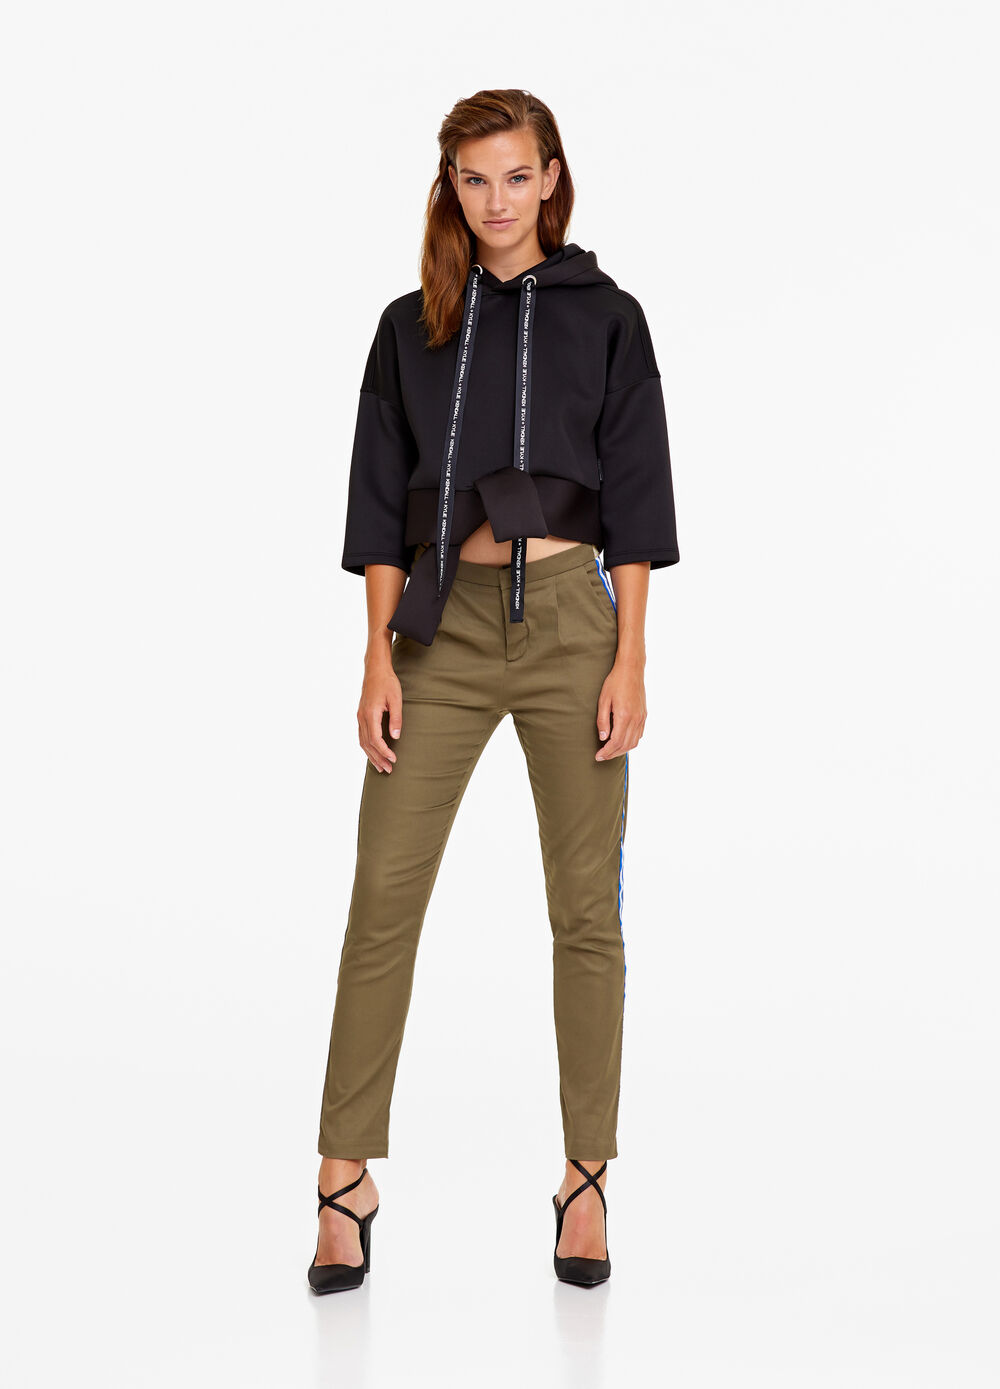 K+K for OVS stretch trousers